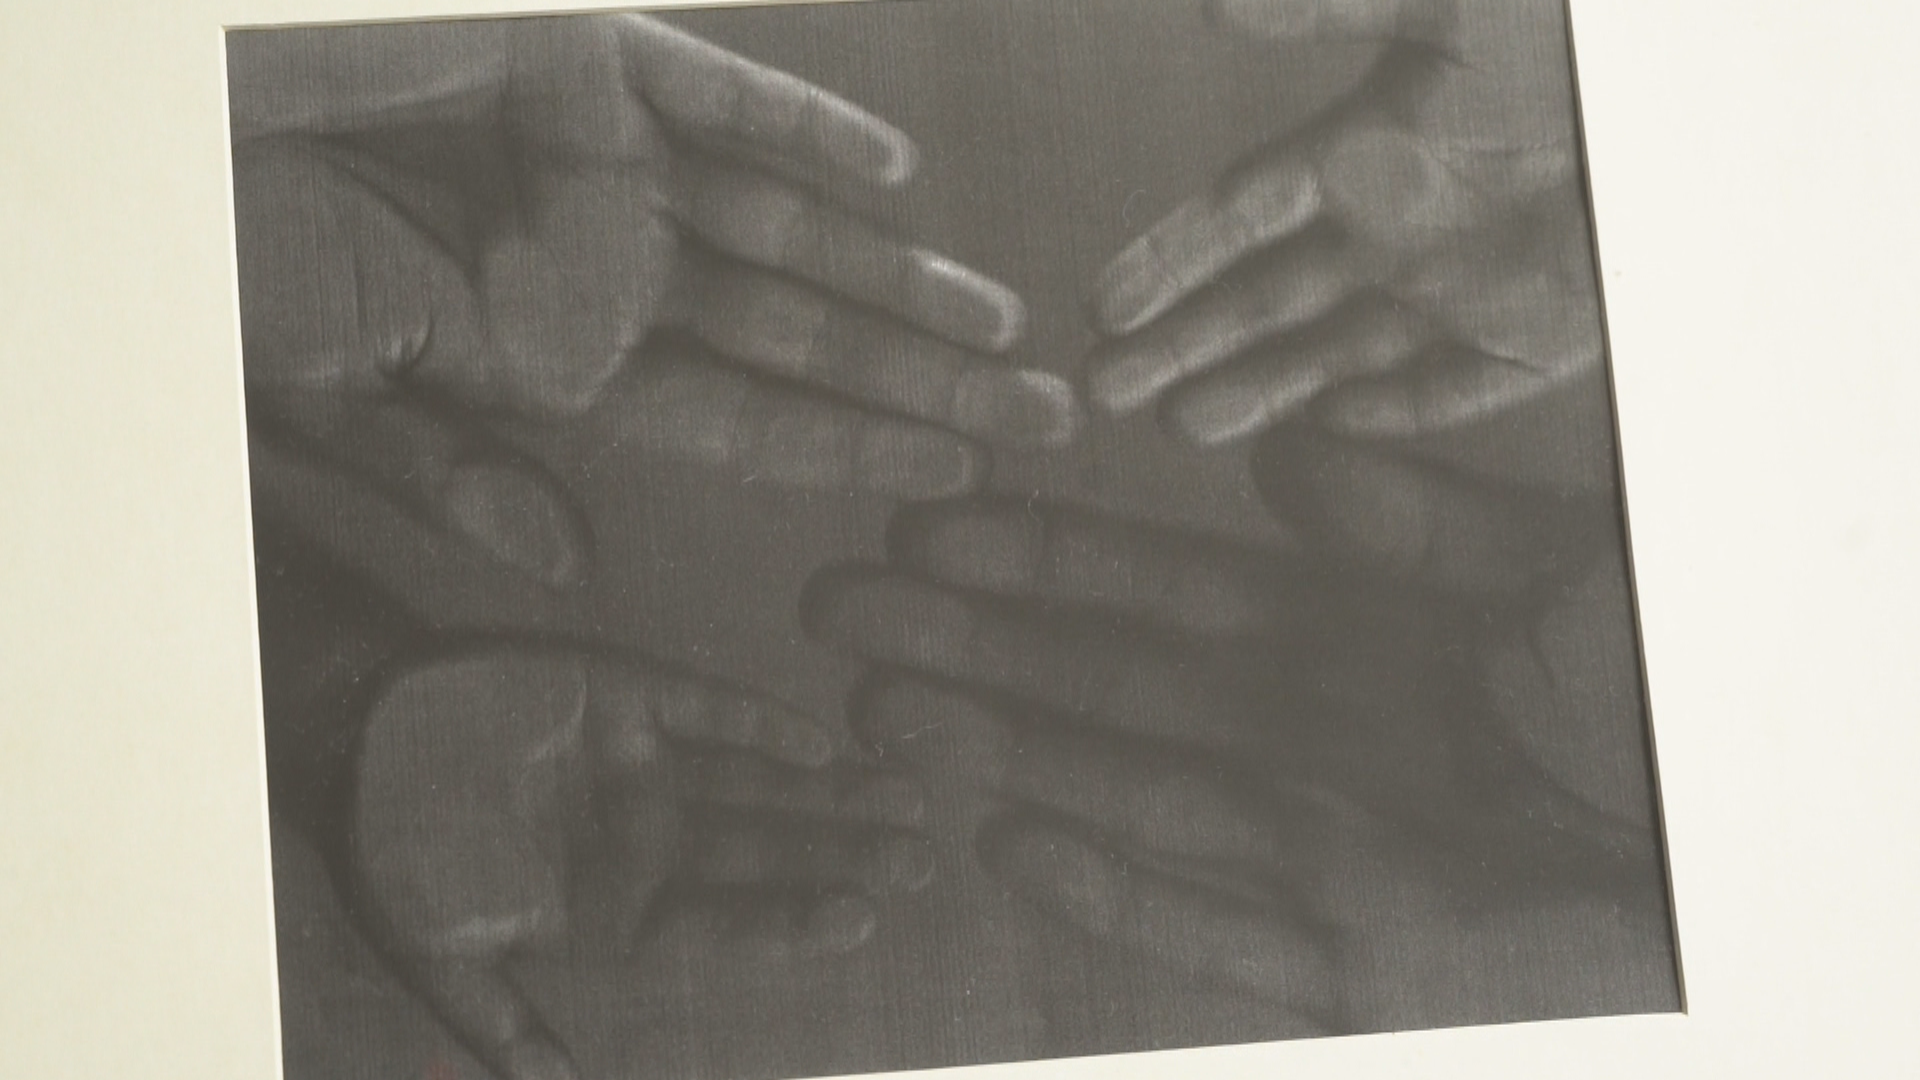 A photocopy of the family's hand prints hangs in their hallway. (Gary Quigley/CBC)